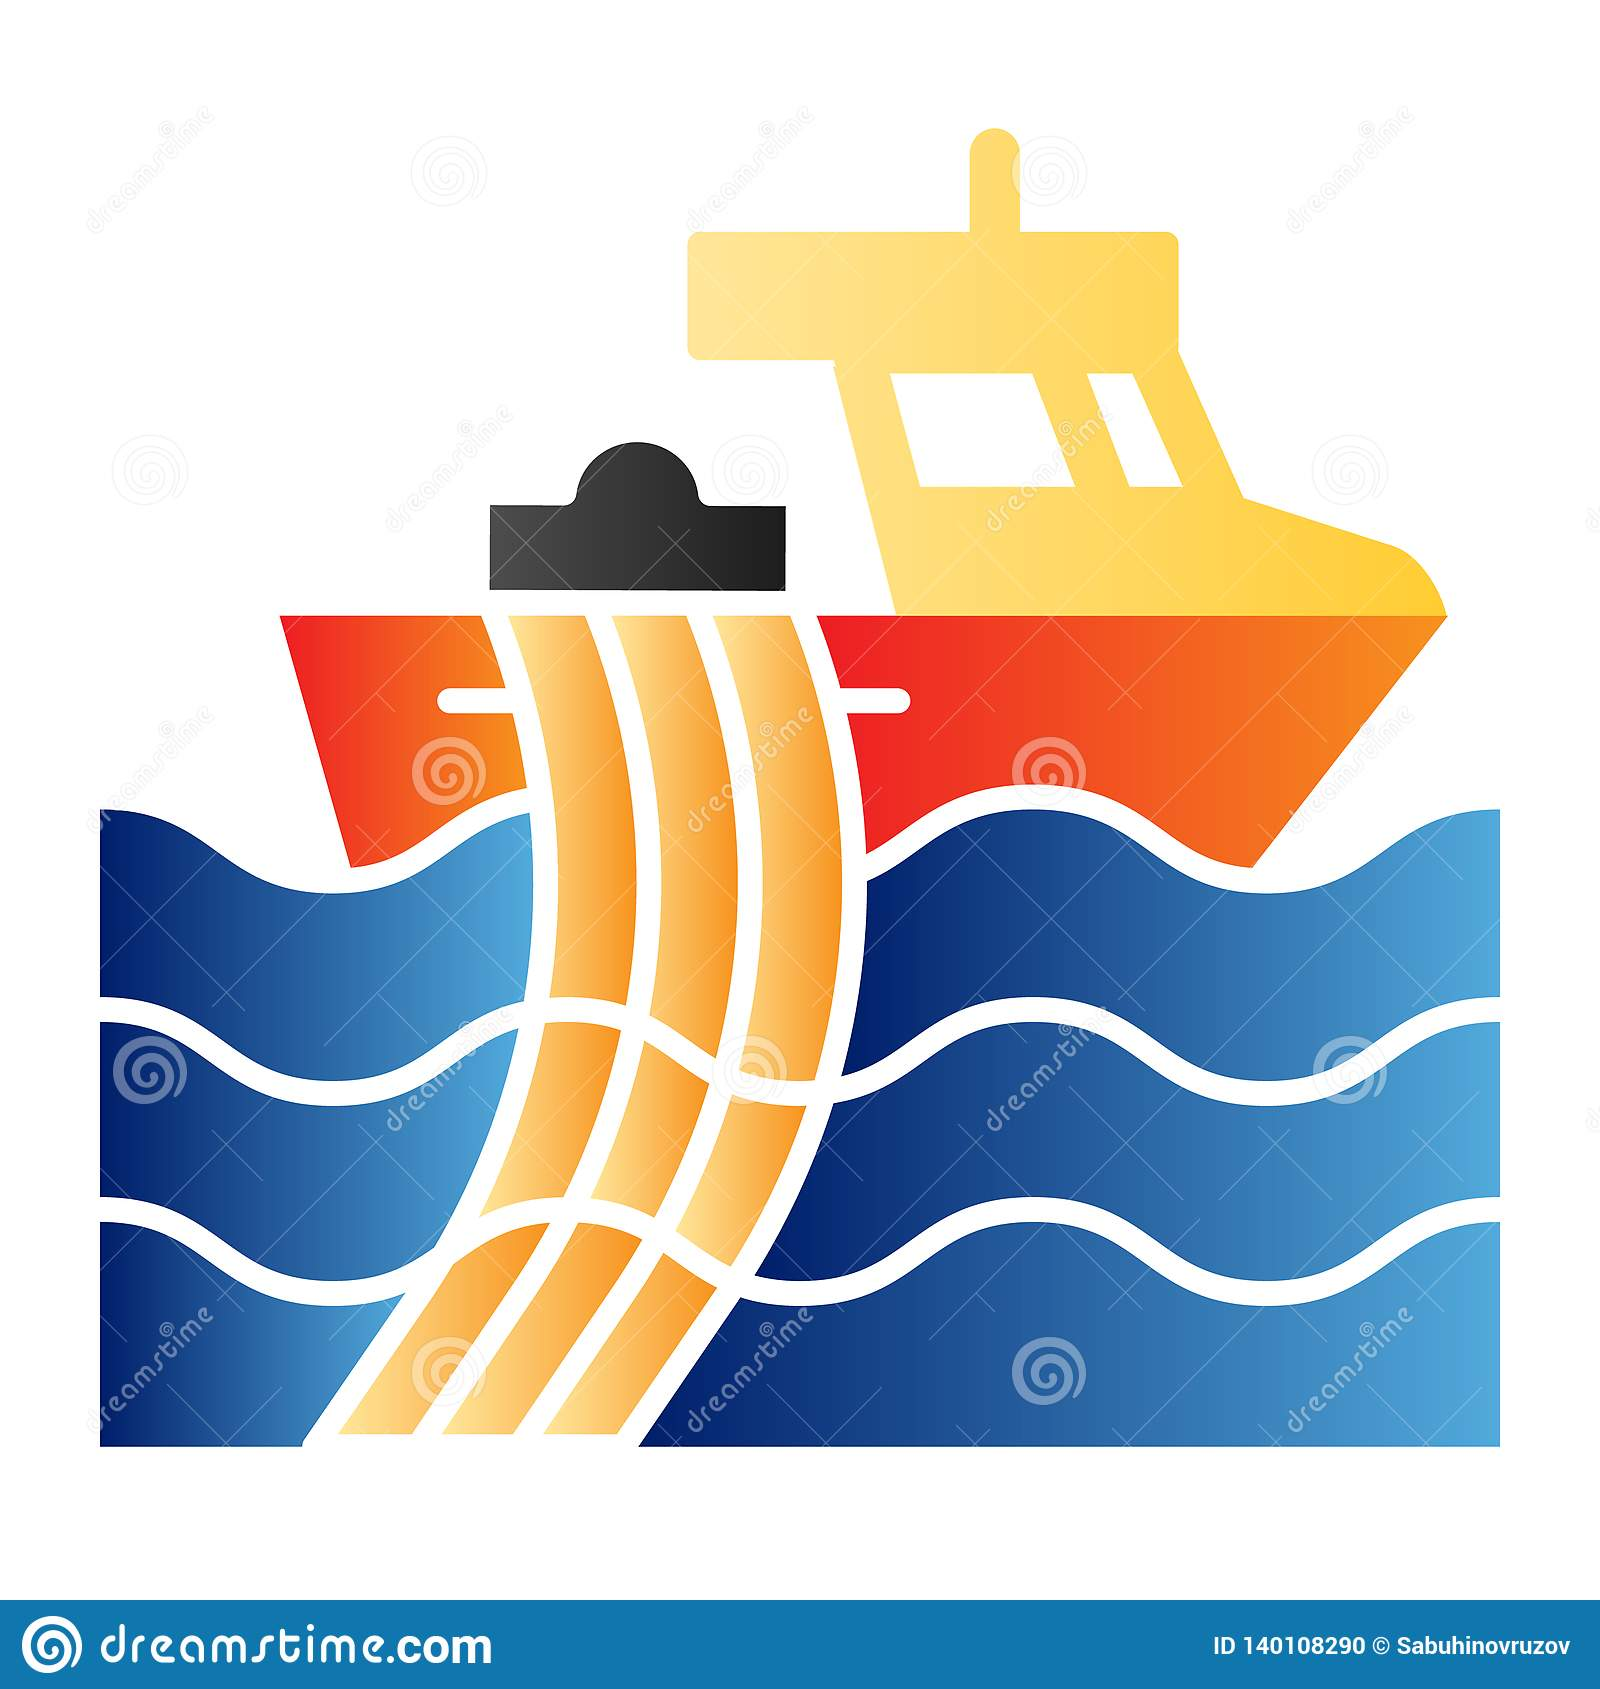 Trawler Flat Icon  Fishing Vessel Color Icons In Trendy Flat Style